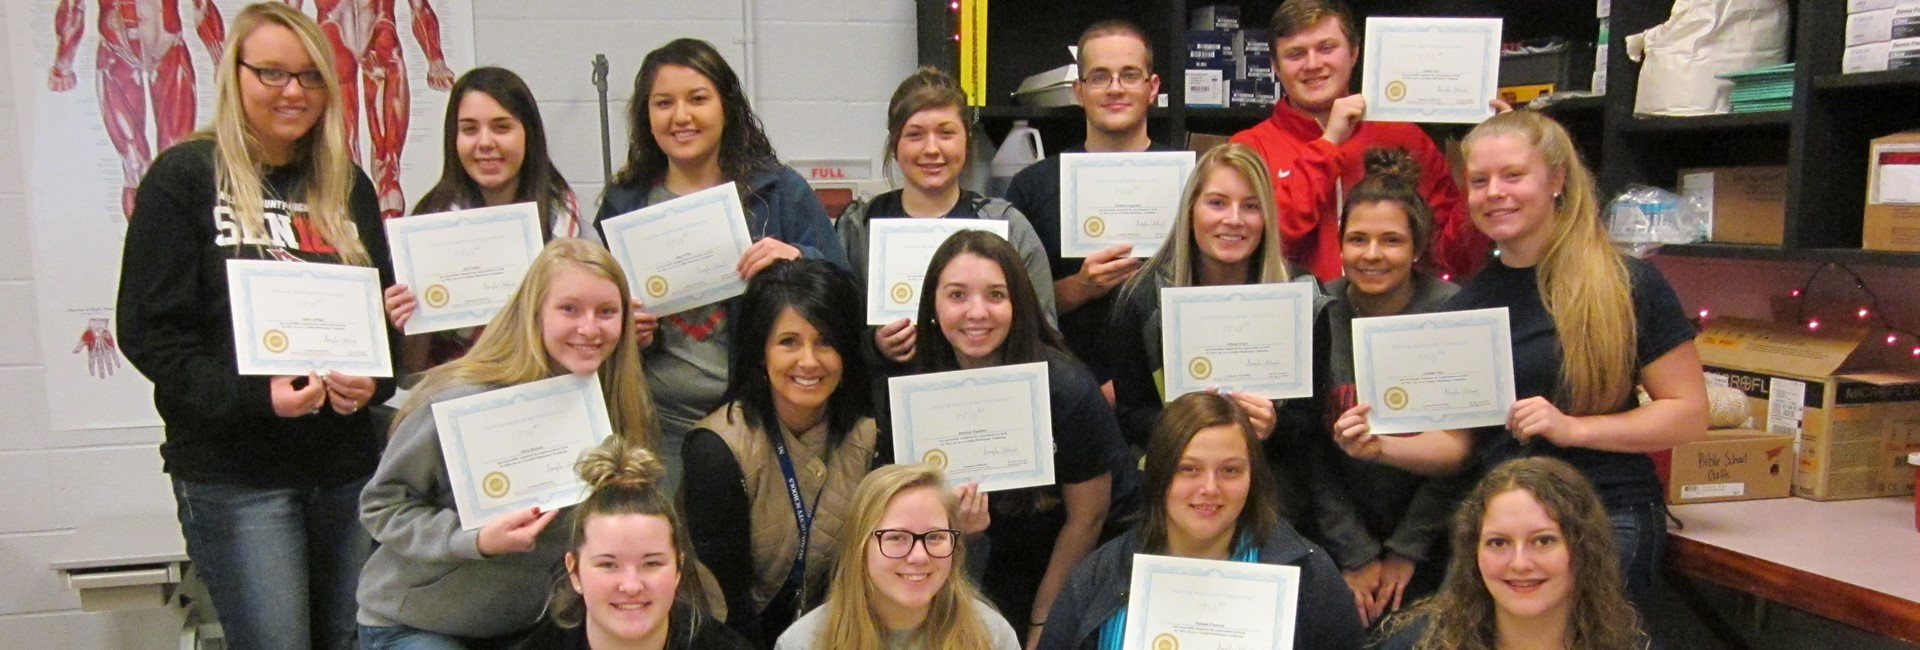 Certified Phlebotomy Technicians